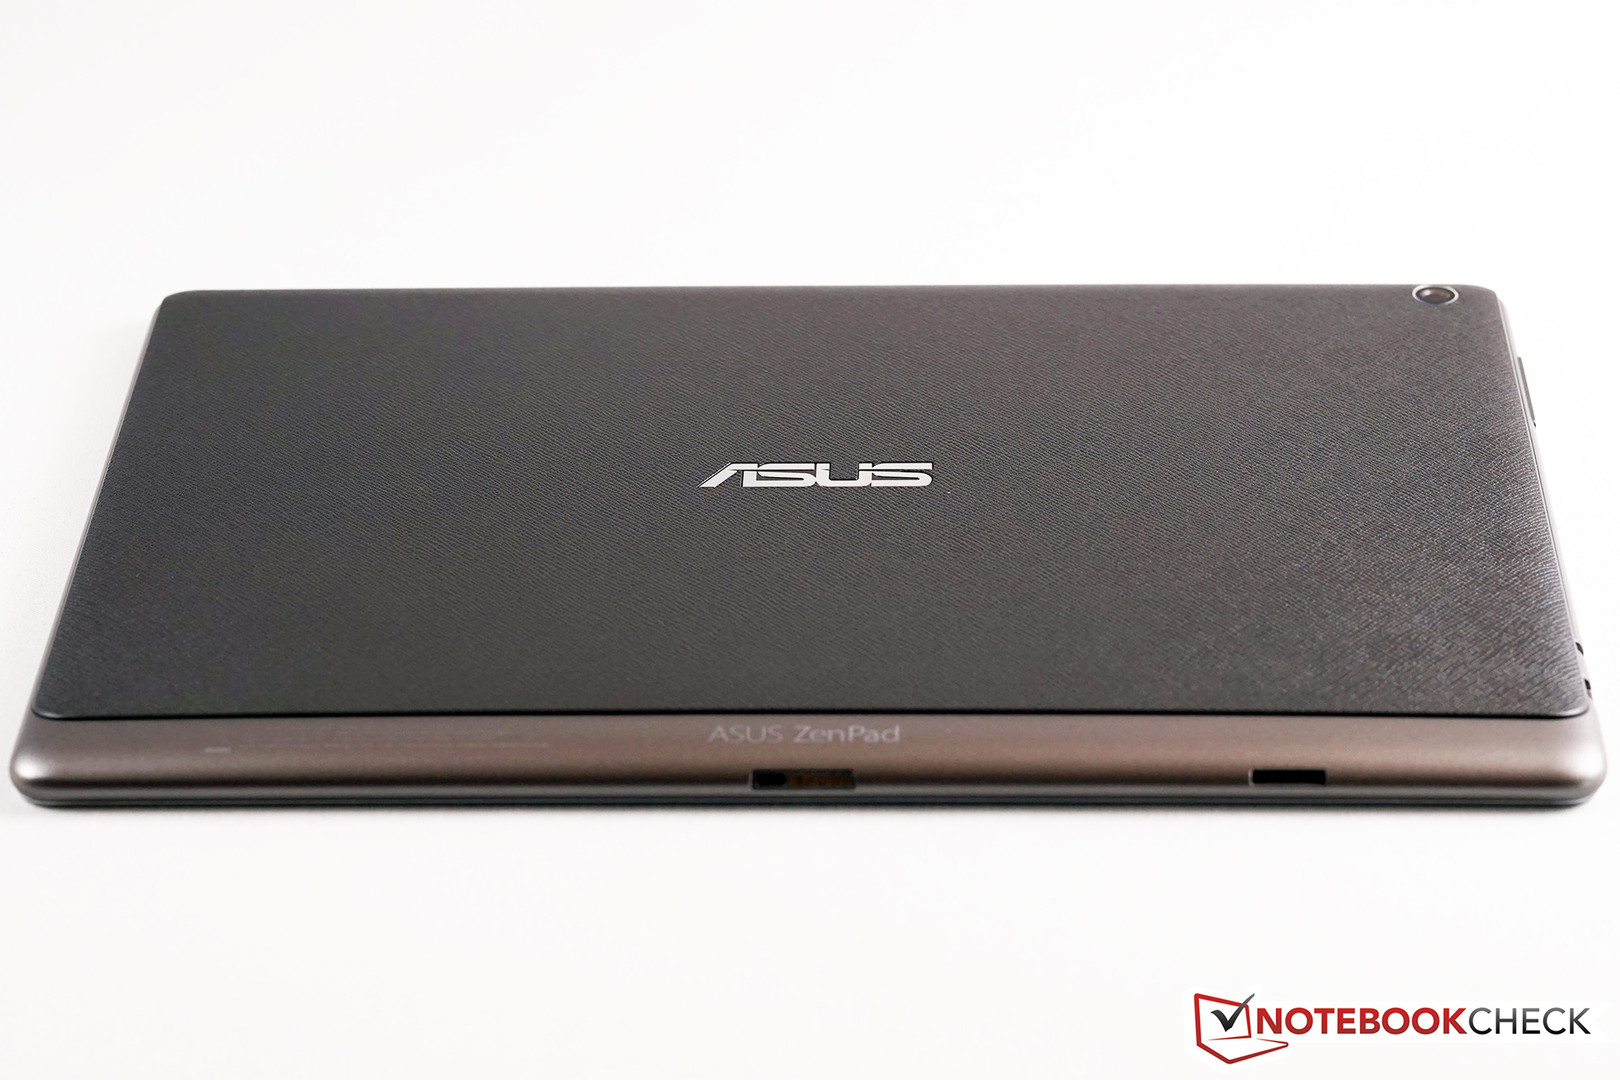 Test asus zenpad 10 0 z300m 6a039a tablet notebookcheck com tests